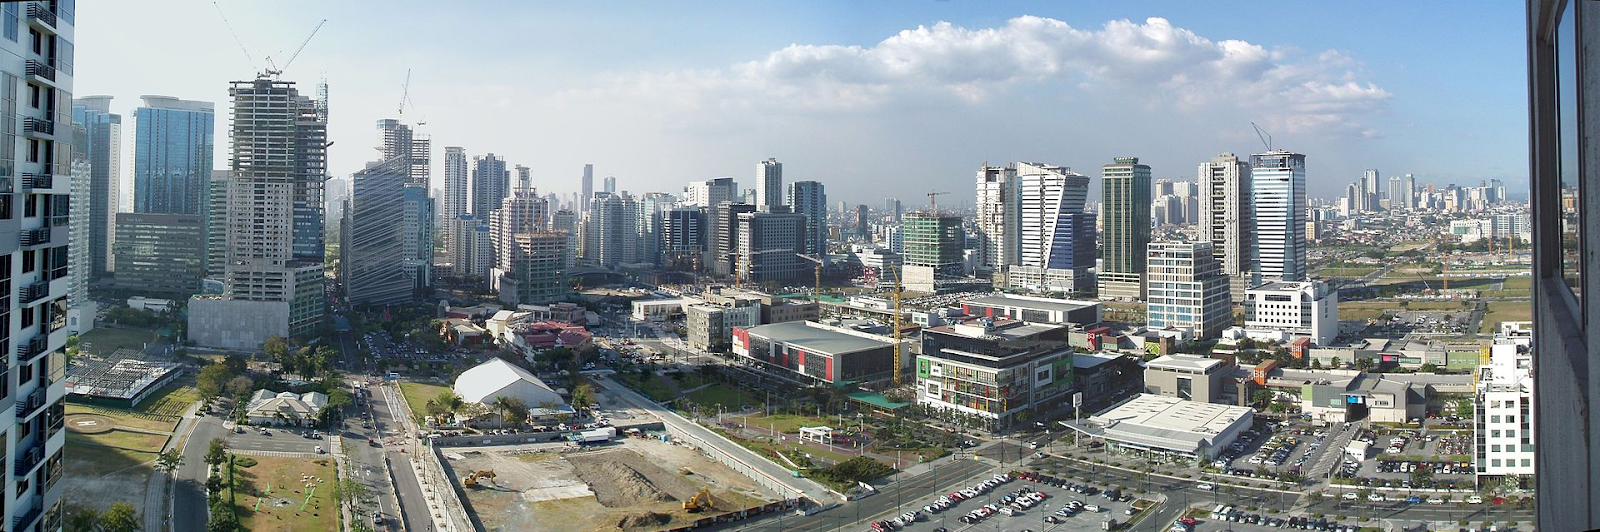 bonifacio global city skyline